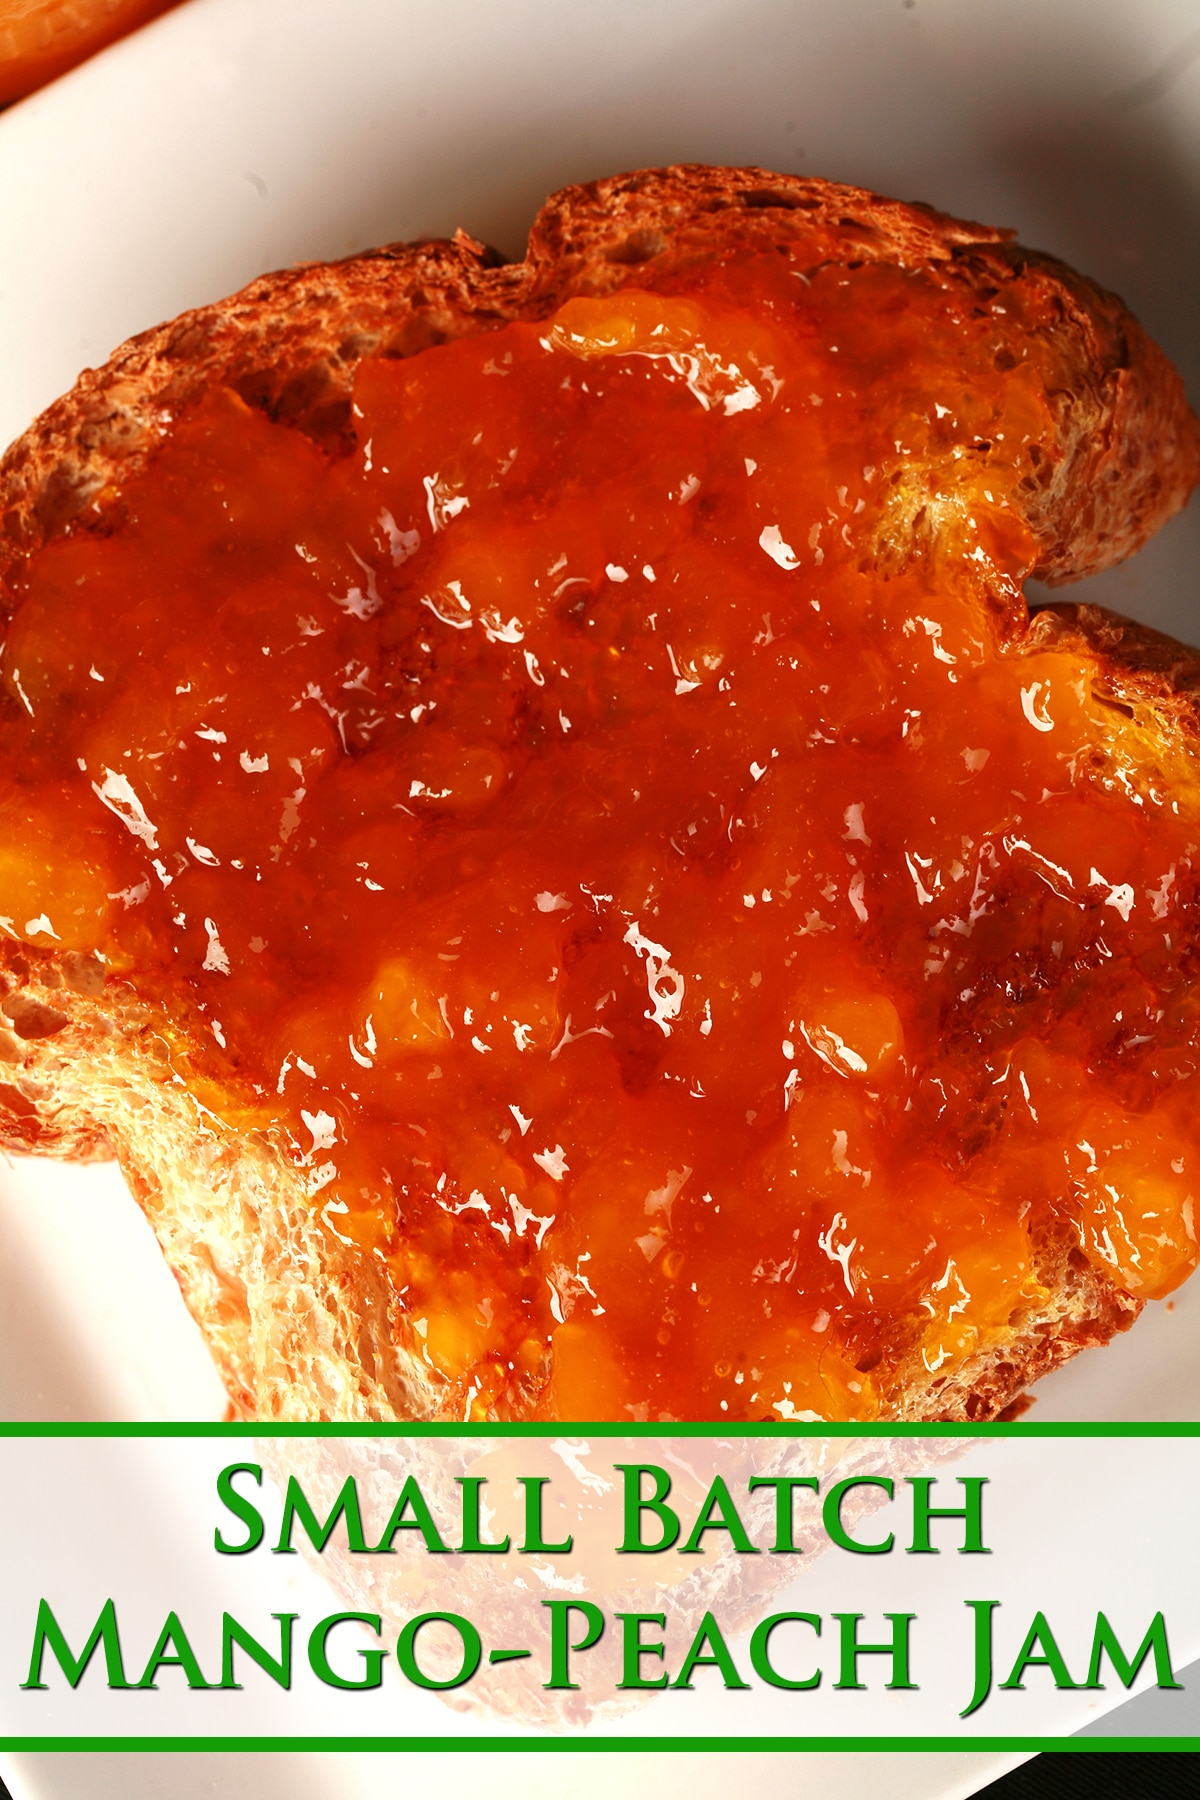 A close up view of a slice of toast that is generously spread with mango peach jam.